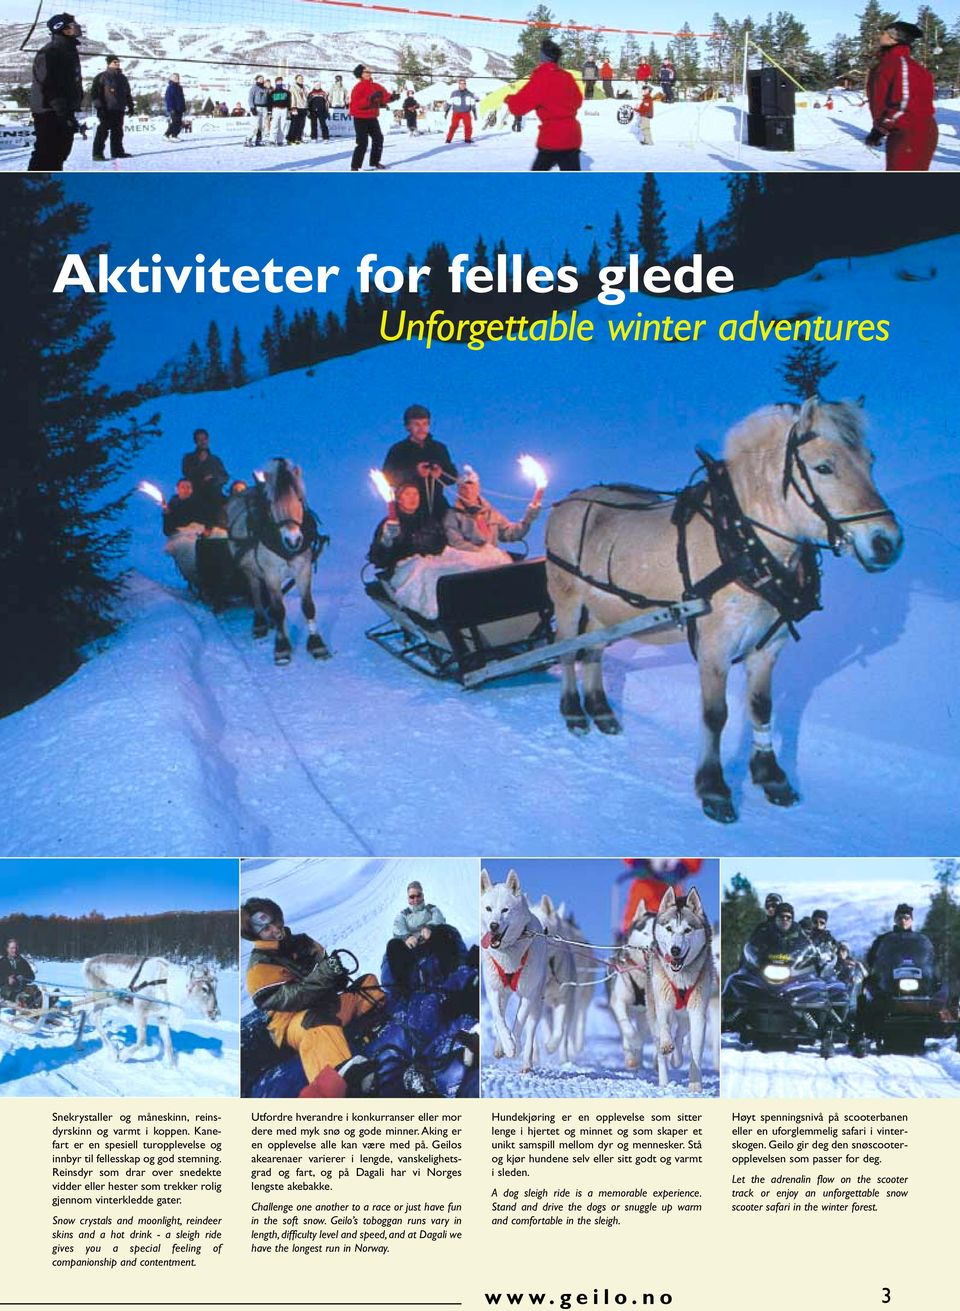 Snow crystals and moonlight, reindeer skins and a hot drink - a sleigh ride gives you a special feeling of companionship and contentment.